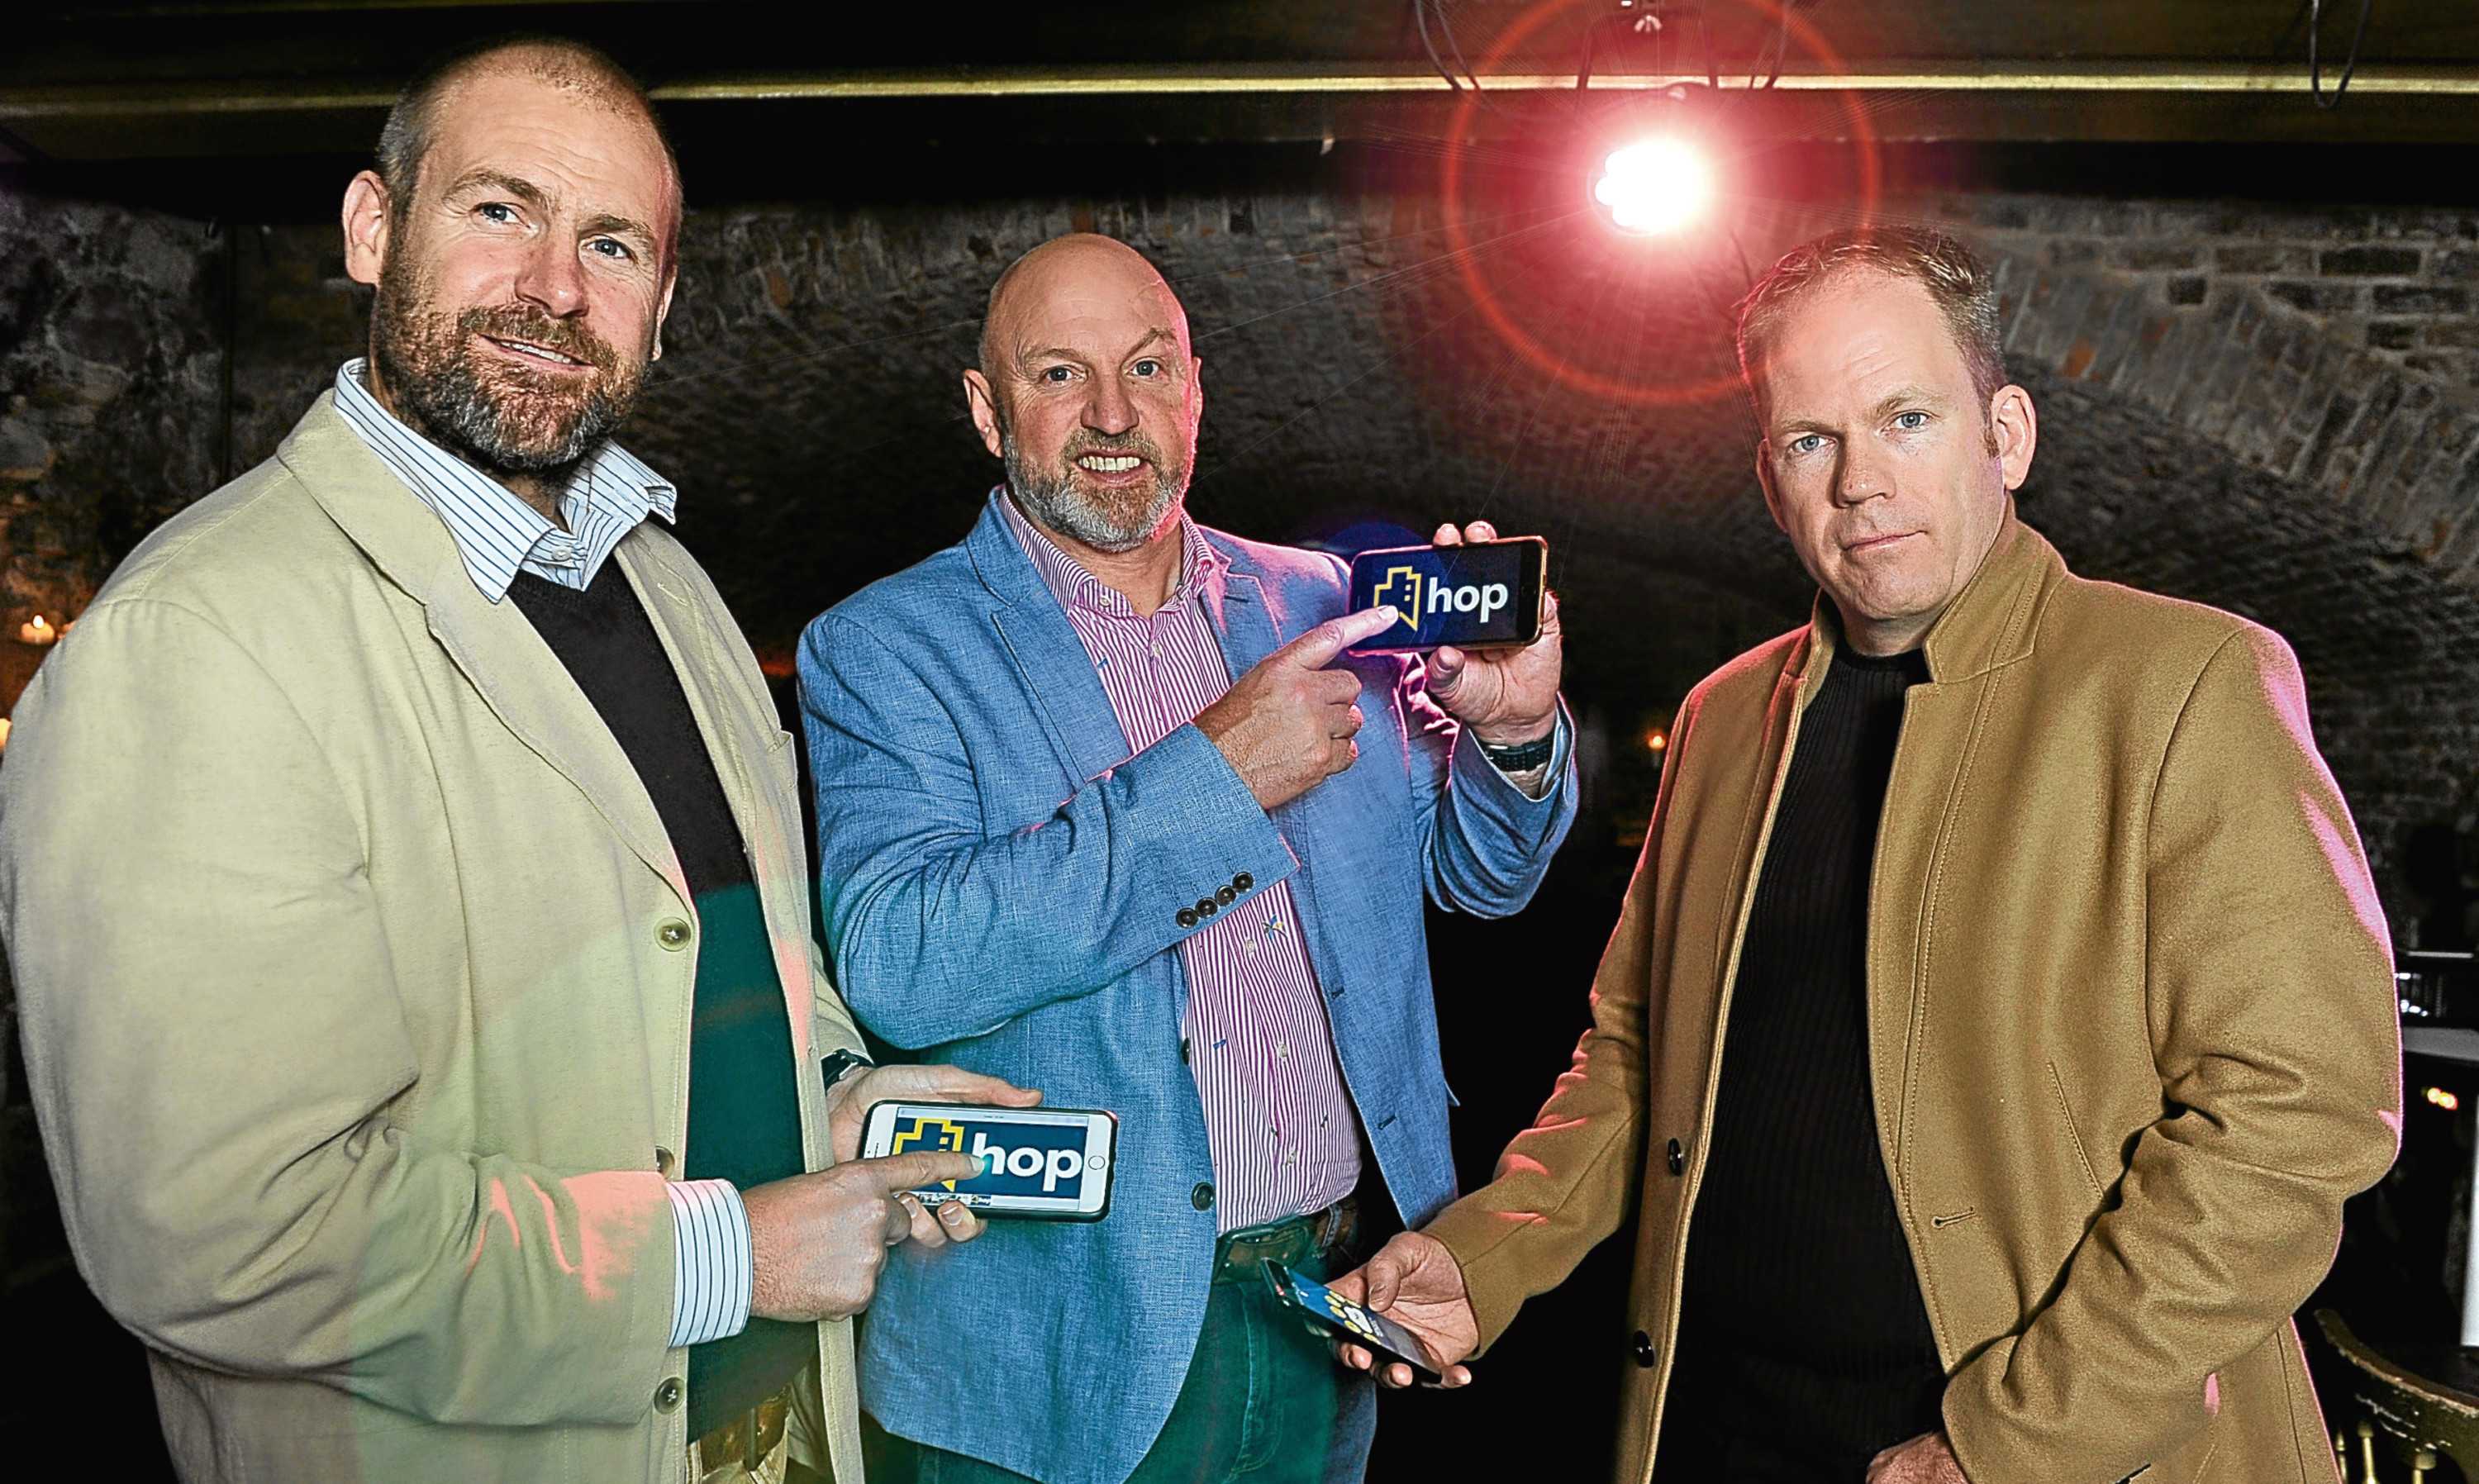 Richard Drummond, owner of McKays Hotel in Pitlochry, (centre) with HOP Software investors Jon Erasmus (left) and Ronald Tweedie (right).